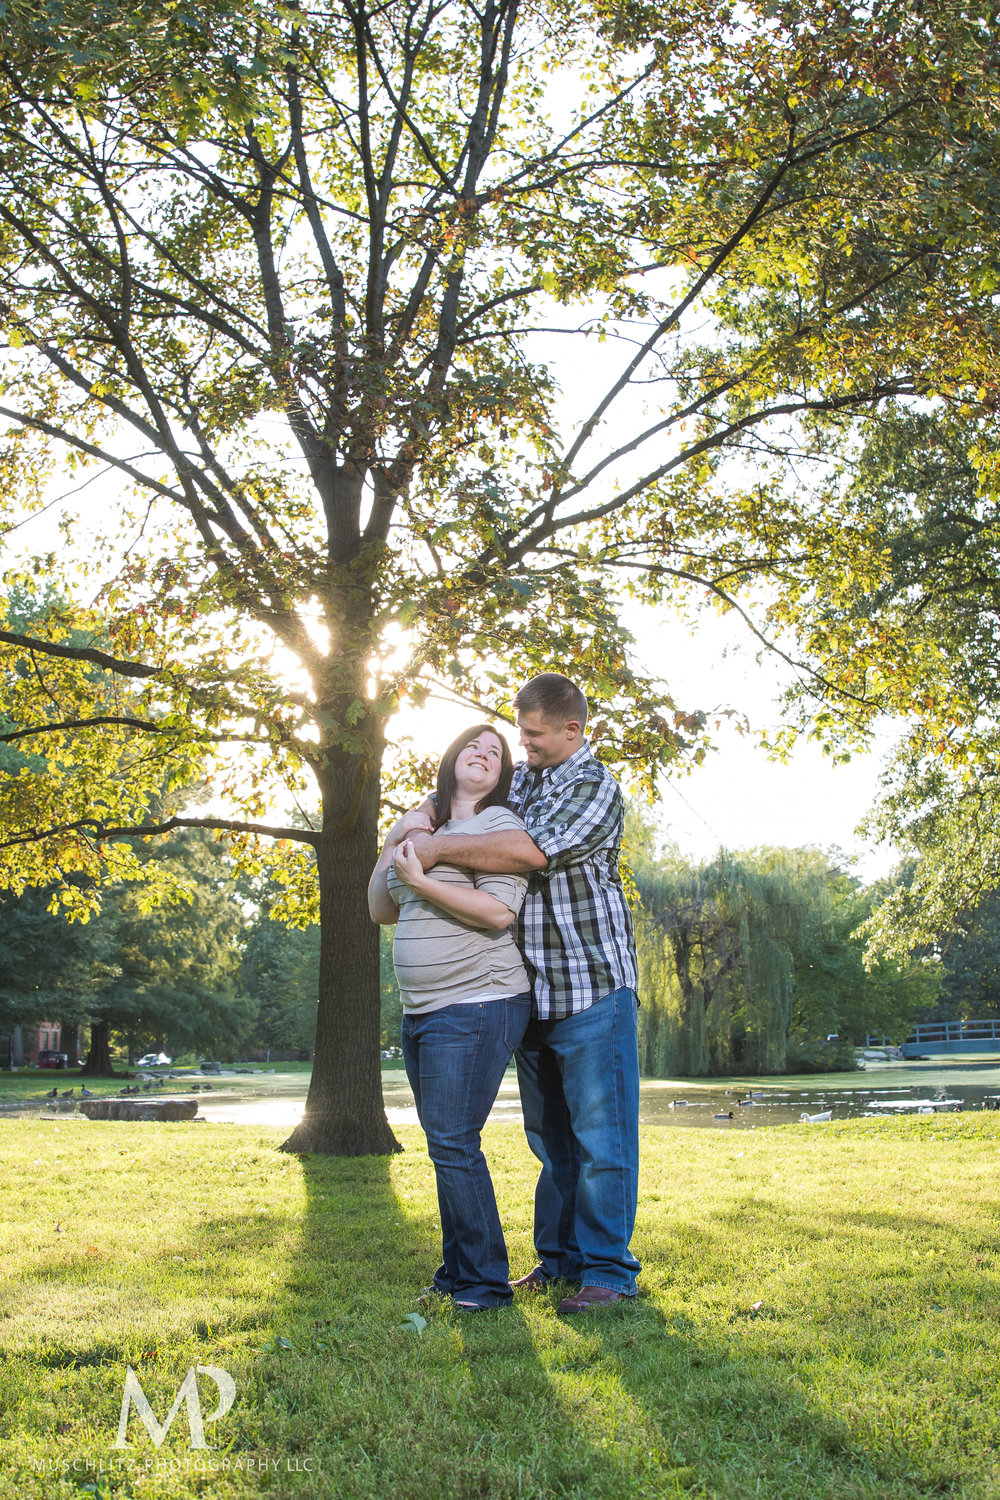 schiller-park-german-village-columbus-ohio-engagement-portrait-session-muschlitz-photography-004.JPG